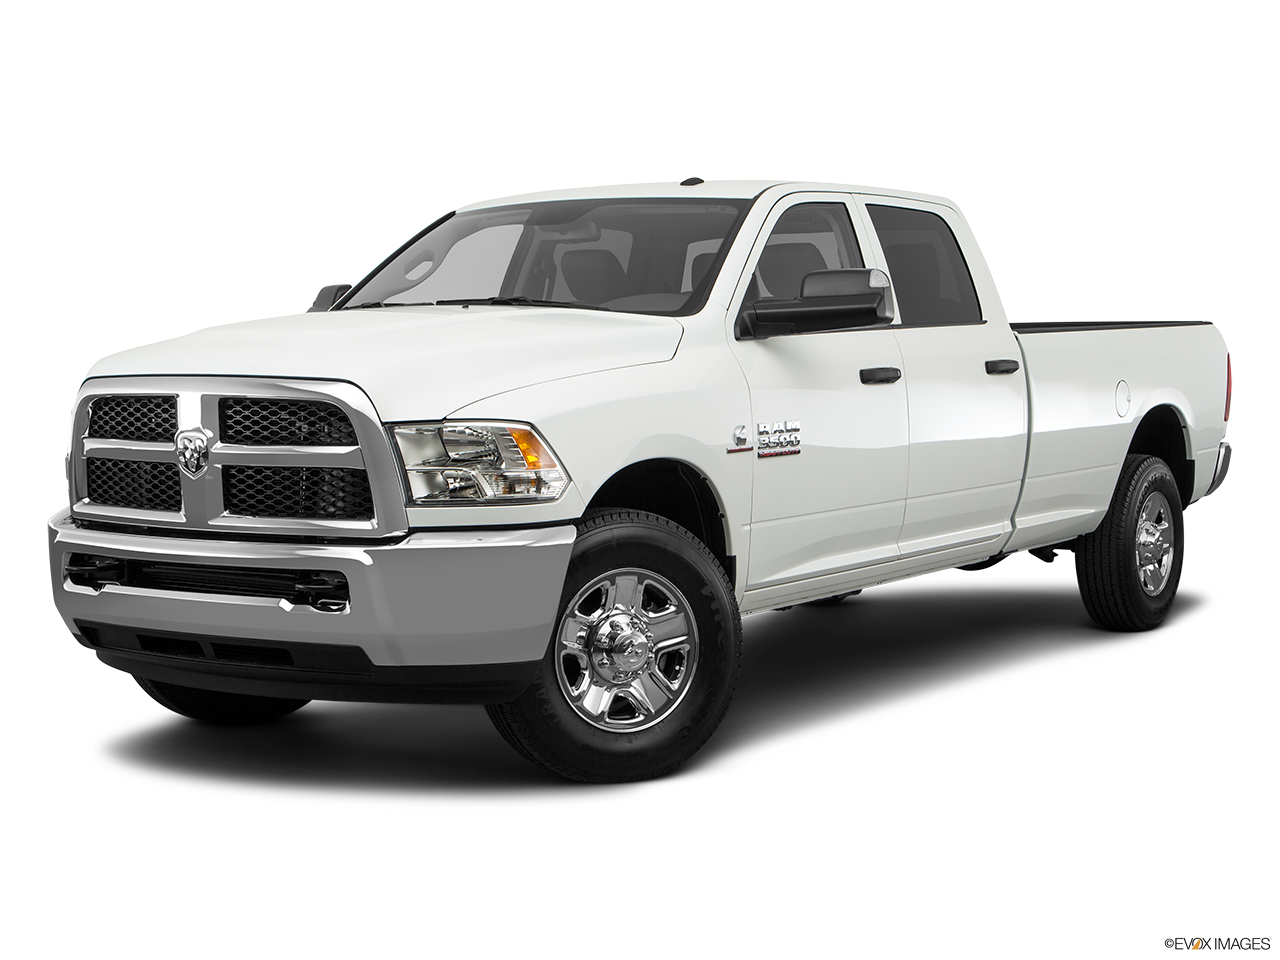 ram 3500 at arrigo dodge chrysler jeep ram ft pierce in fort pierce. Cars Review. Best American Auto & Cars Review